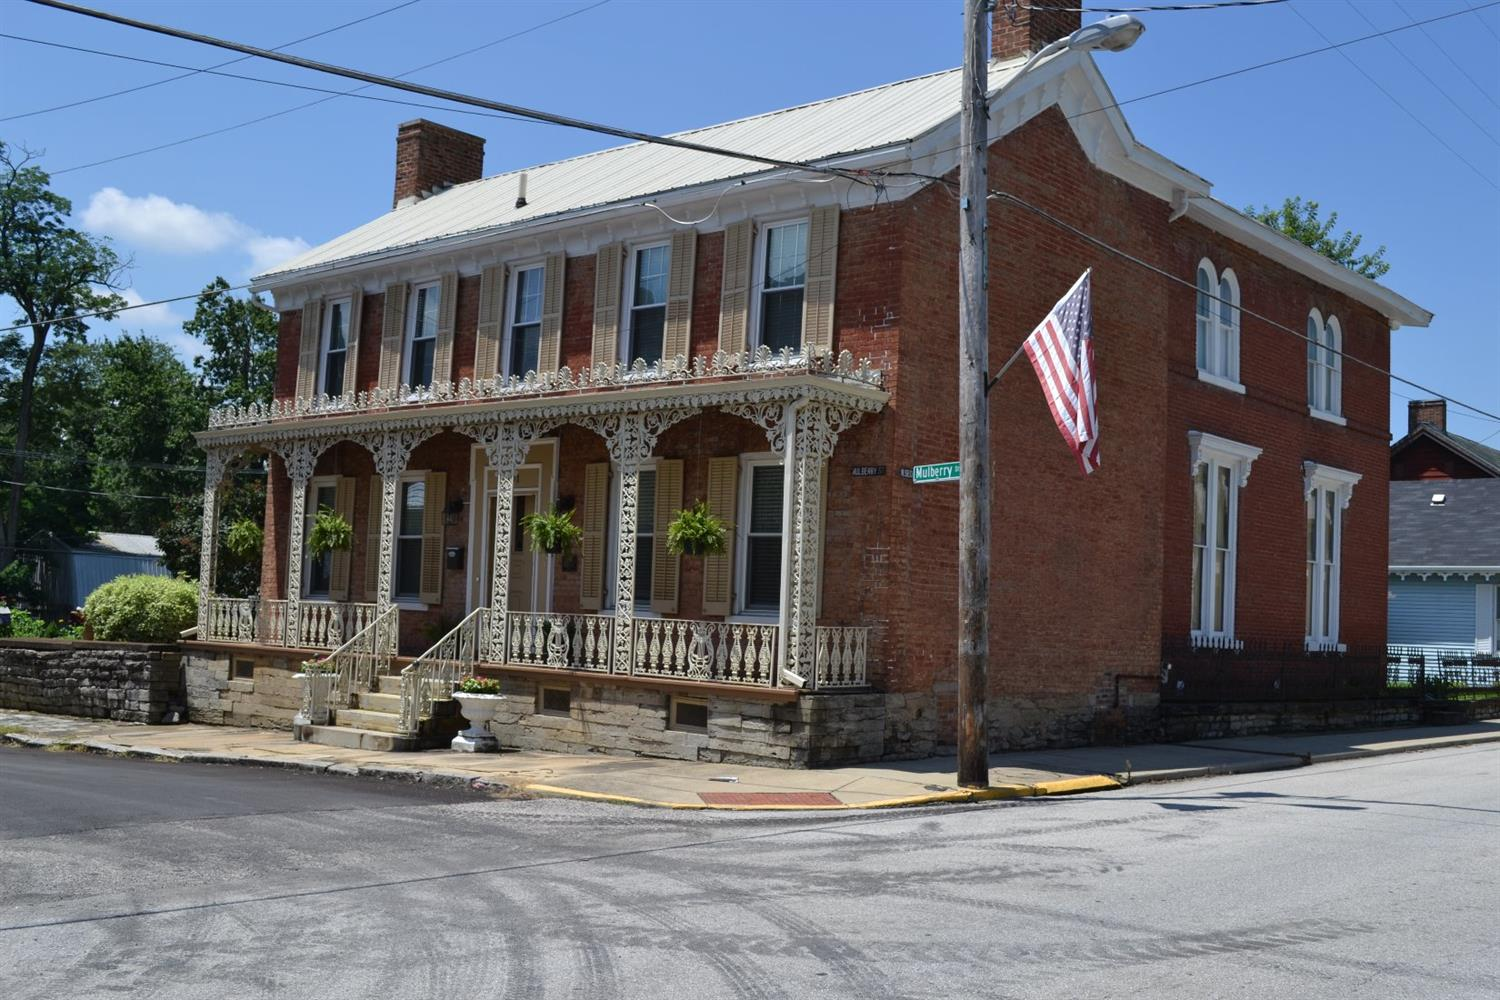 201 N Second St, Ripley, OH - USA (photo 1)